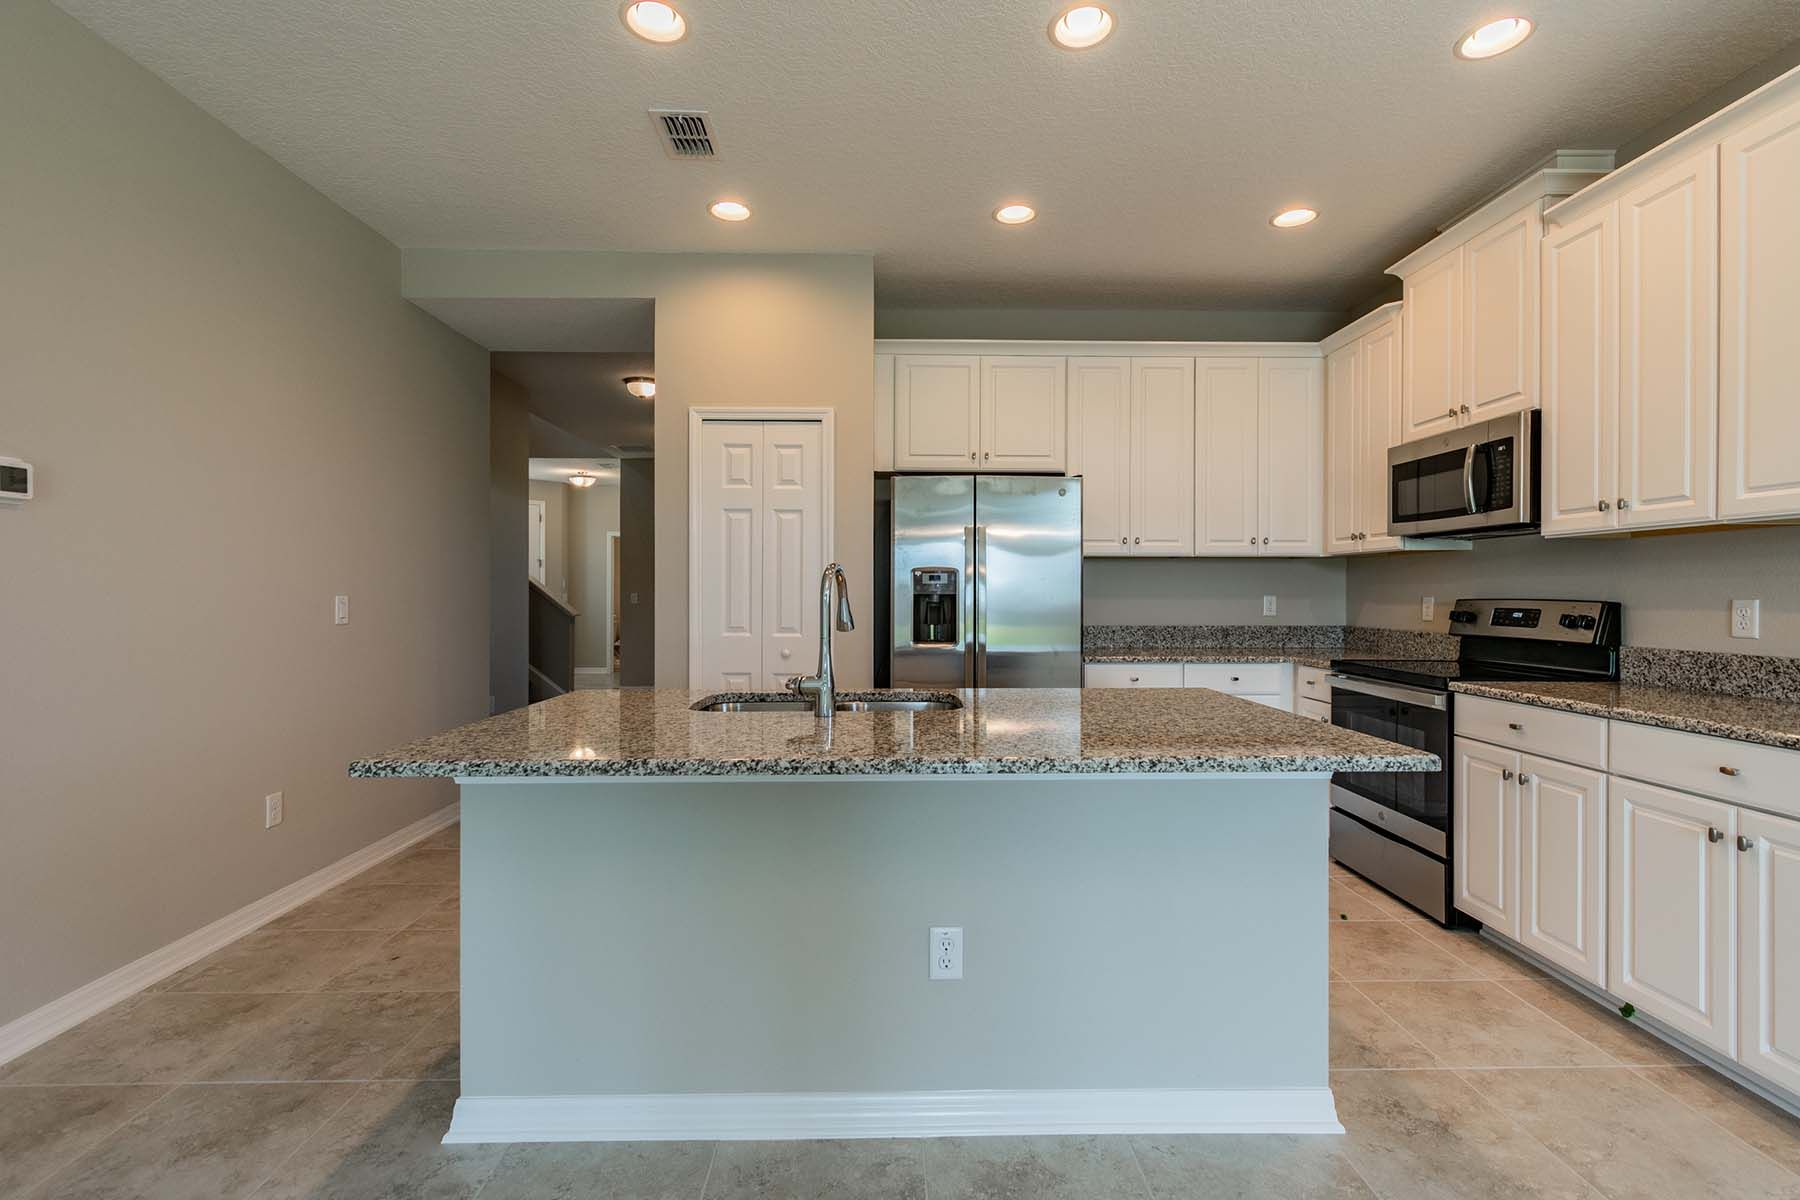 Kitchen featured in the Herrera By M/I Homes in Tampa-St. Petersburg, FL